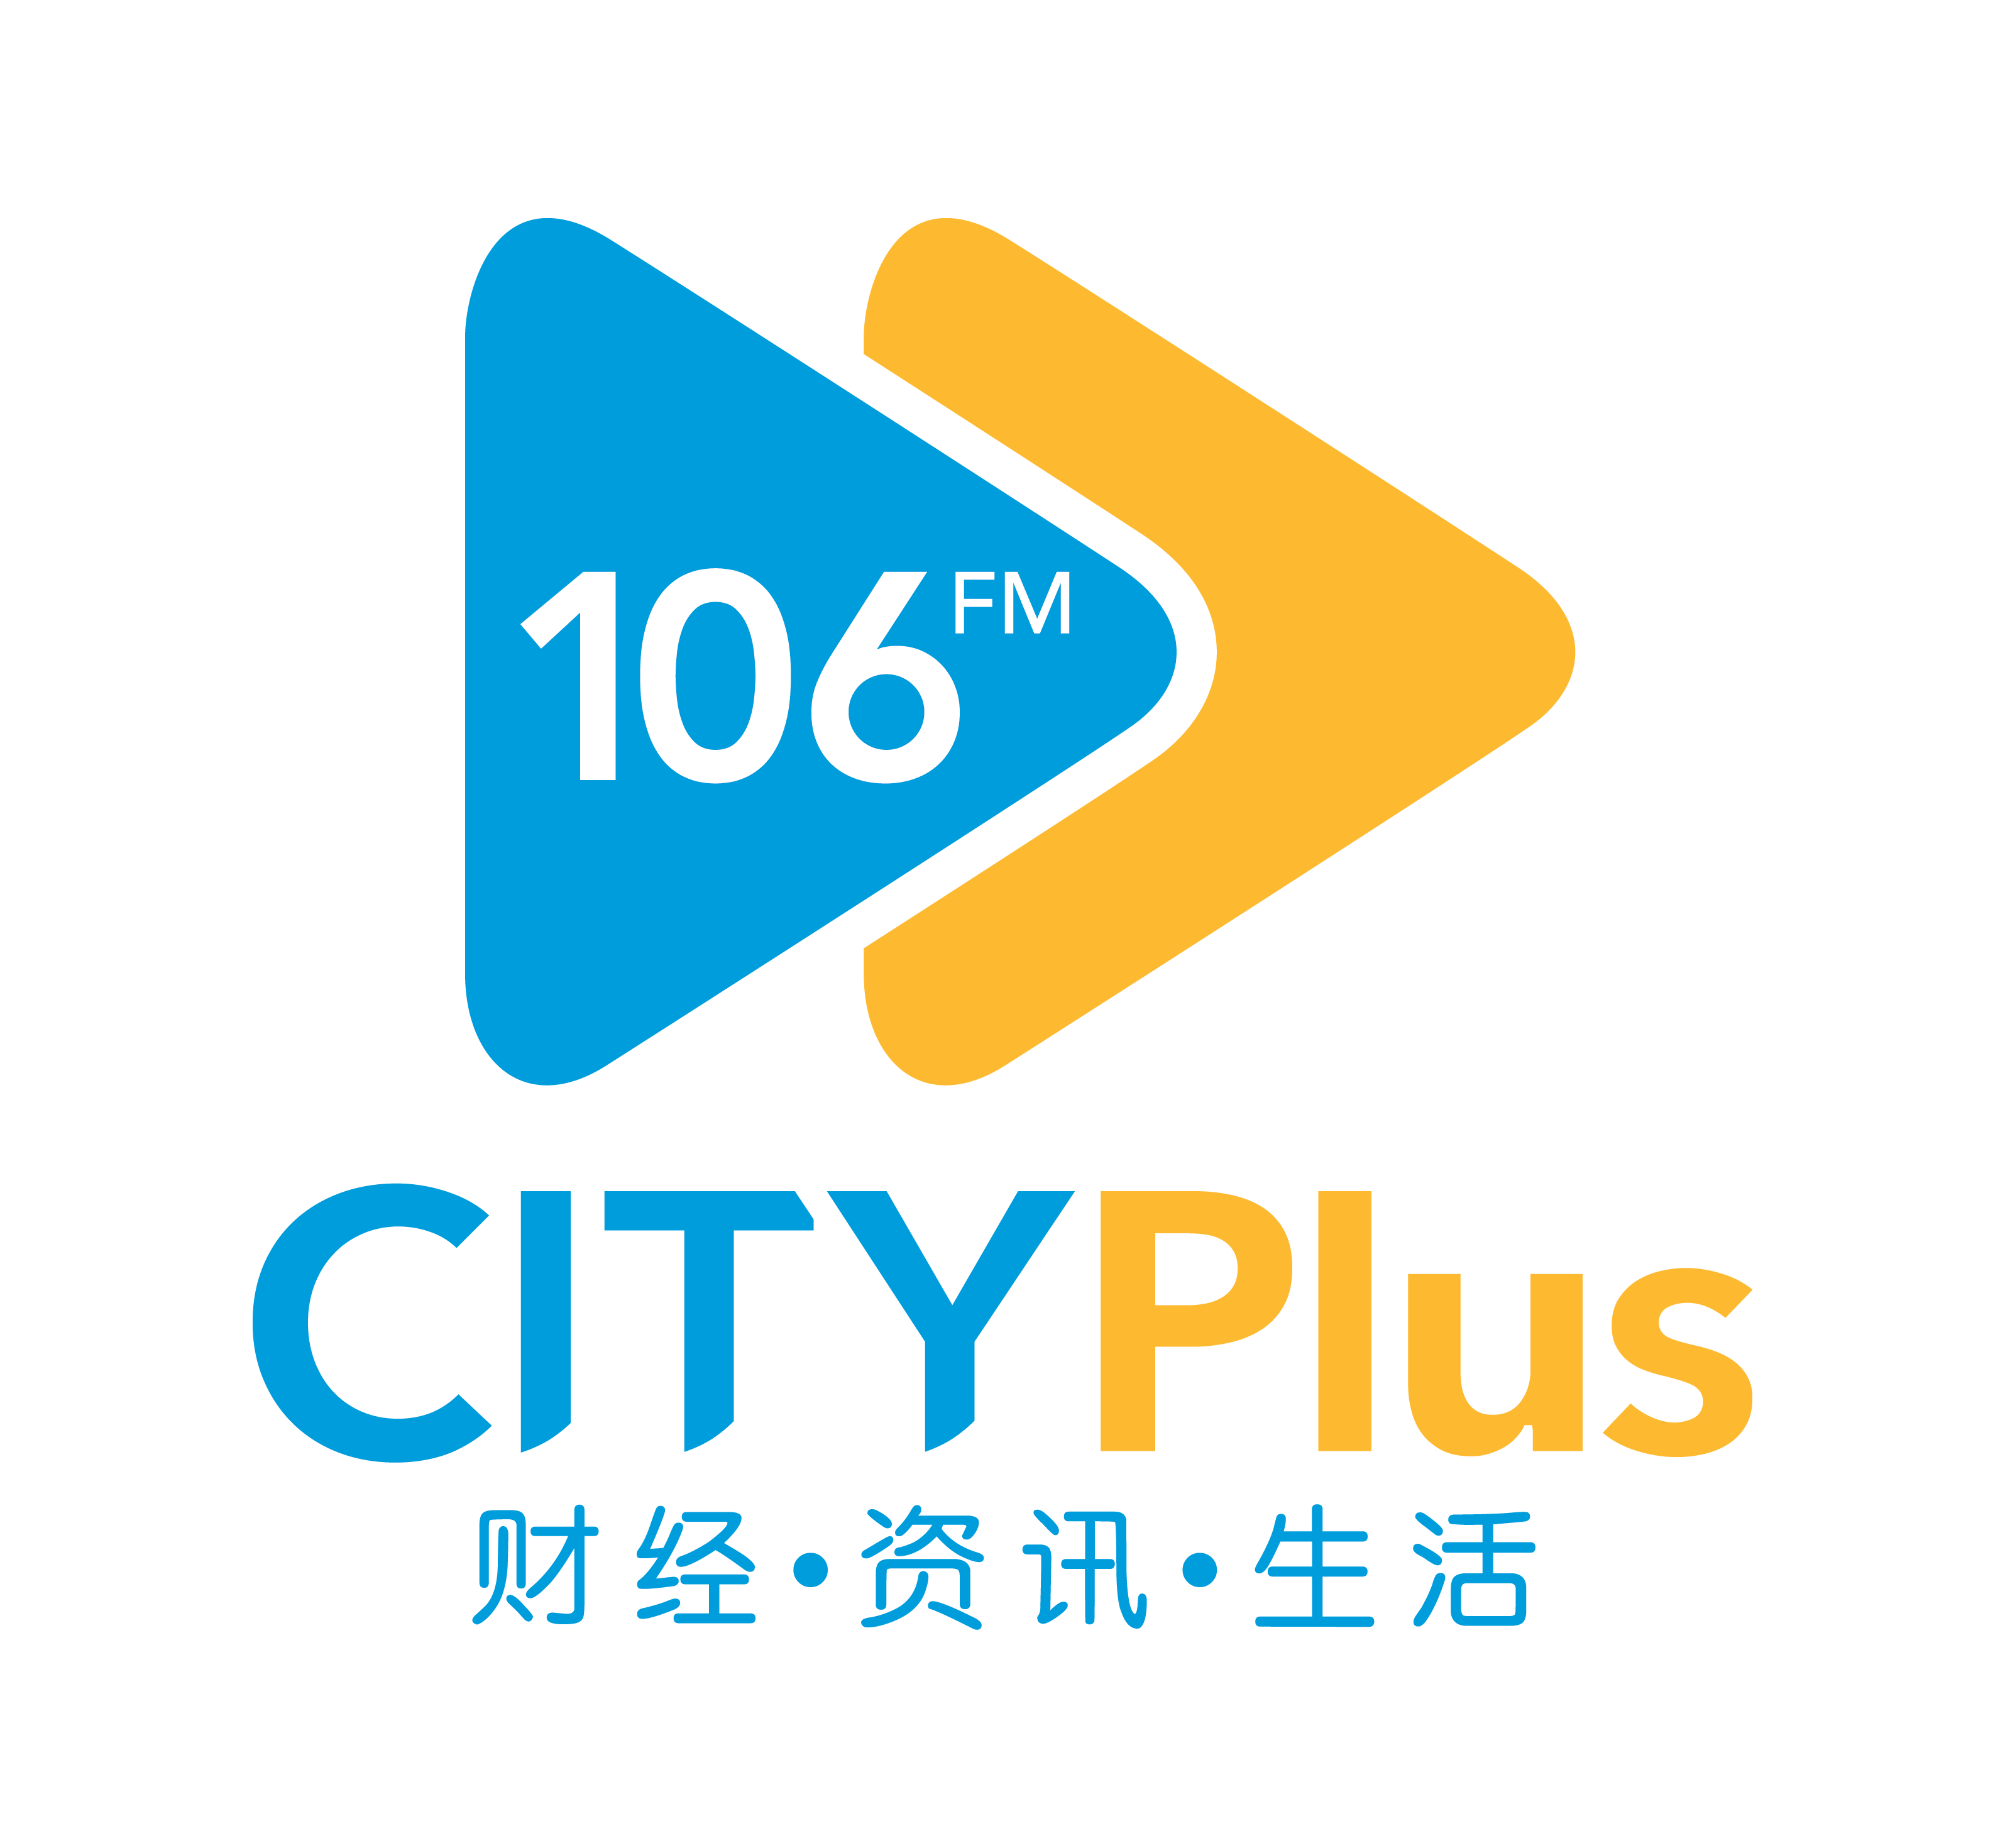 Smart care with AI technology helps to prevent falls, injuries and improve the elderly's quality of life | CITYPlus FM  AI智能看护系统,预防一失足成周身病痛!